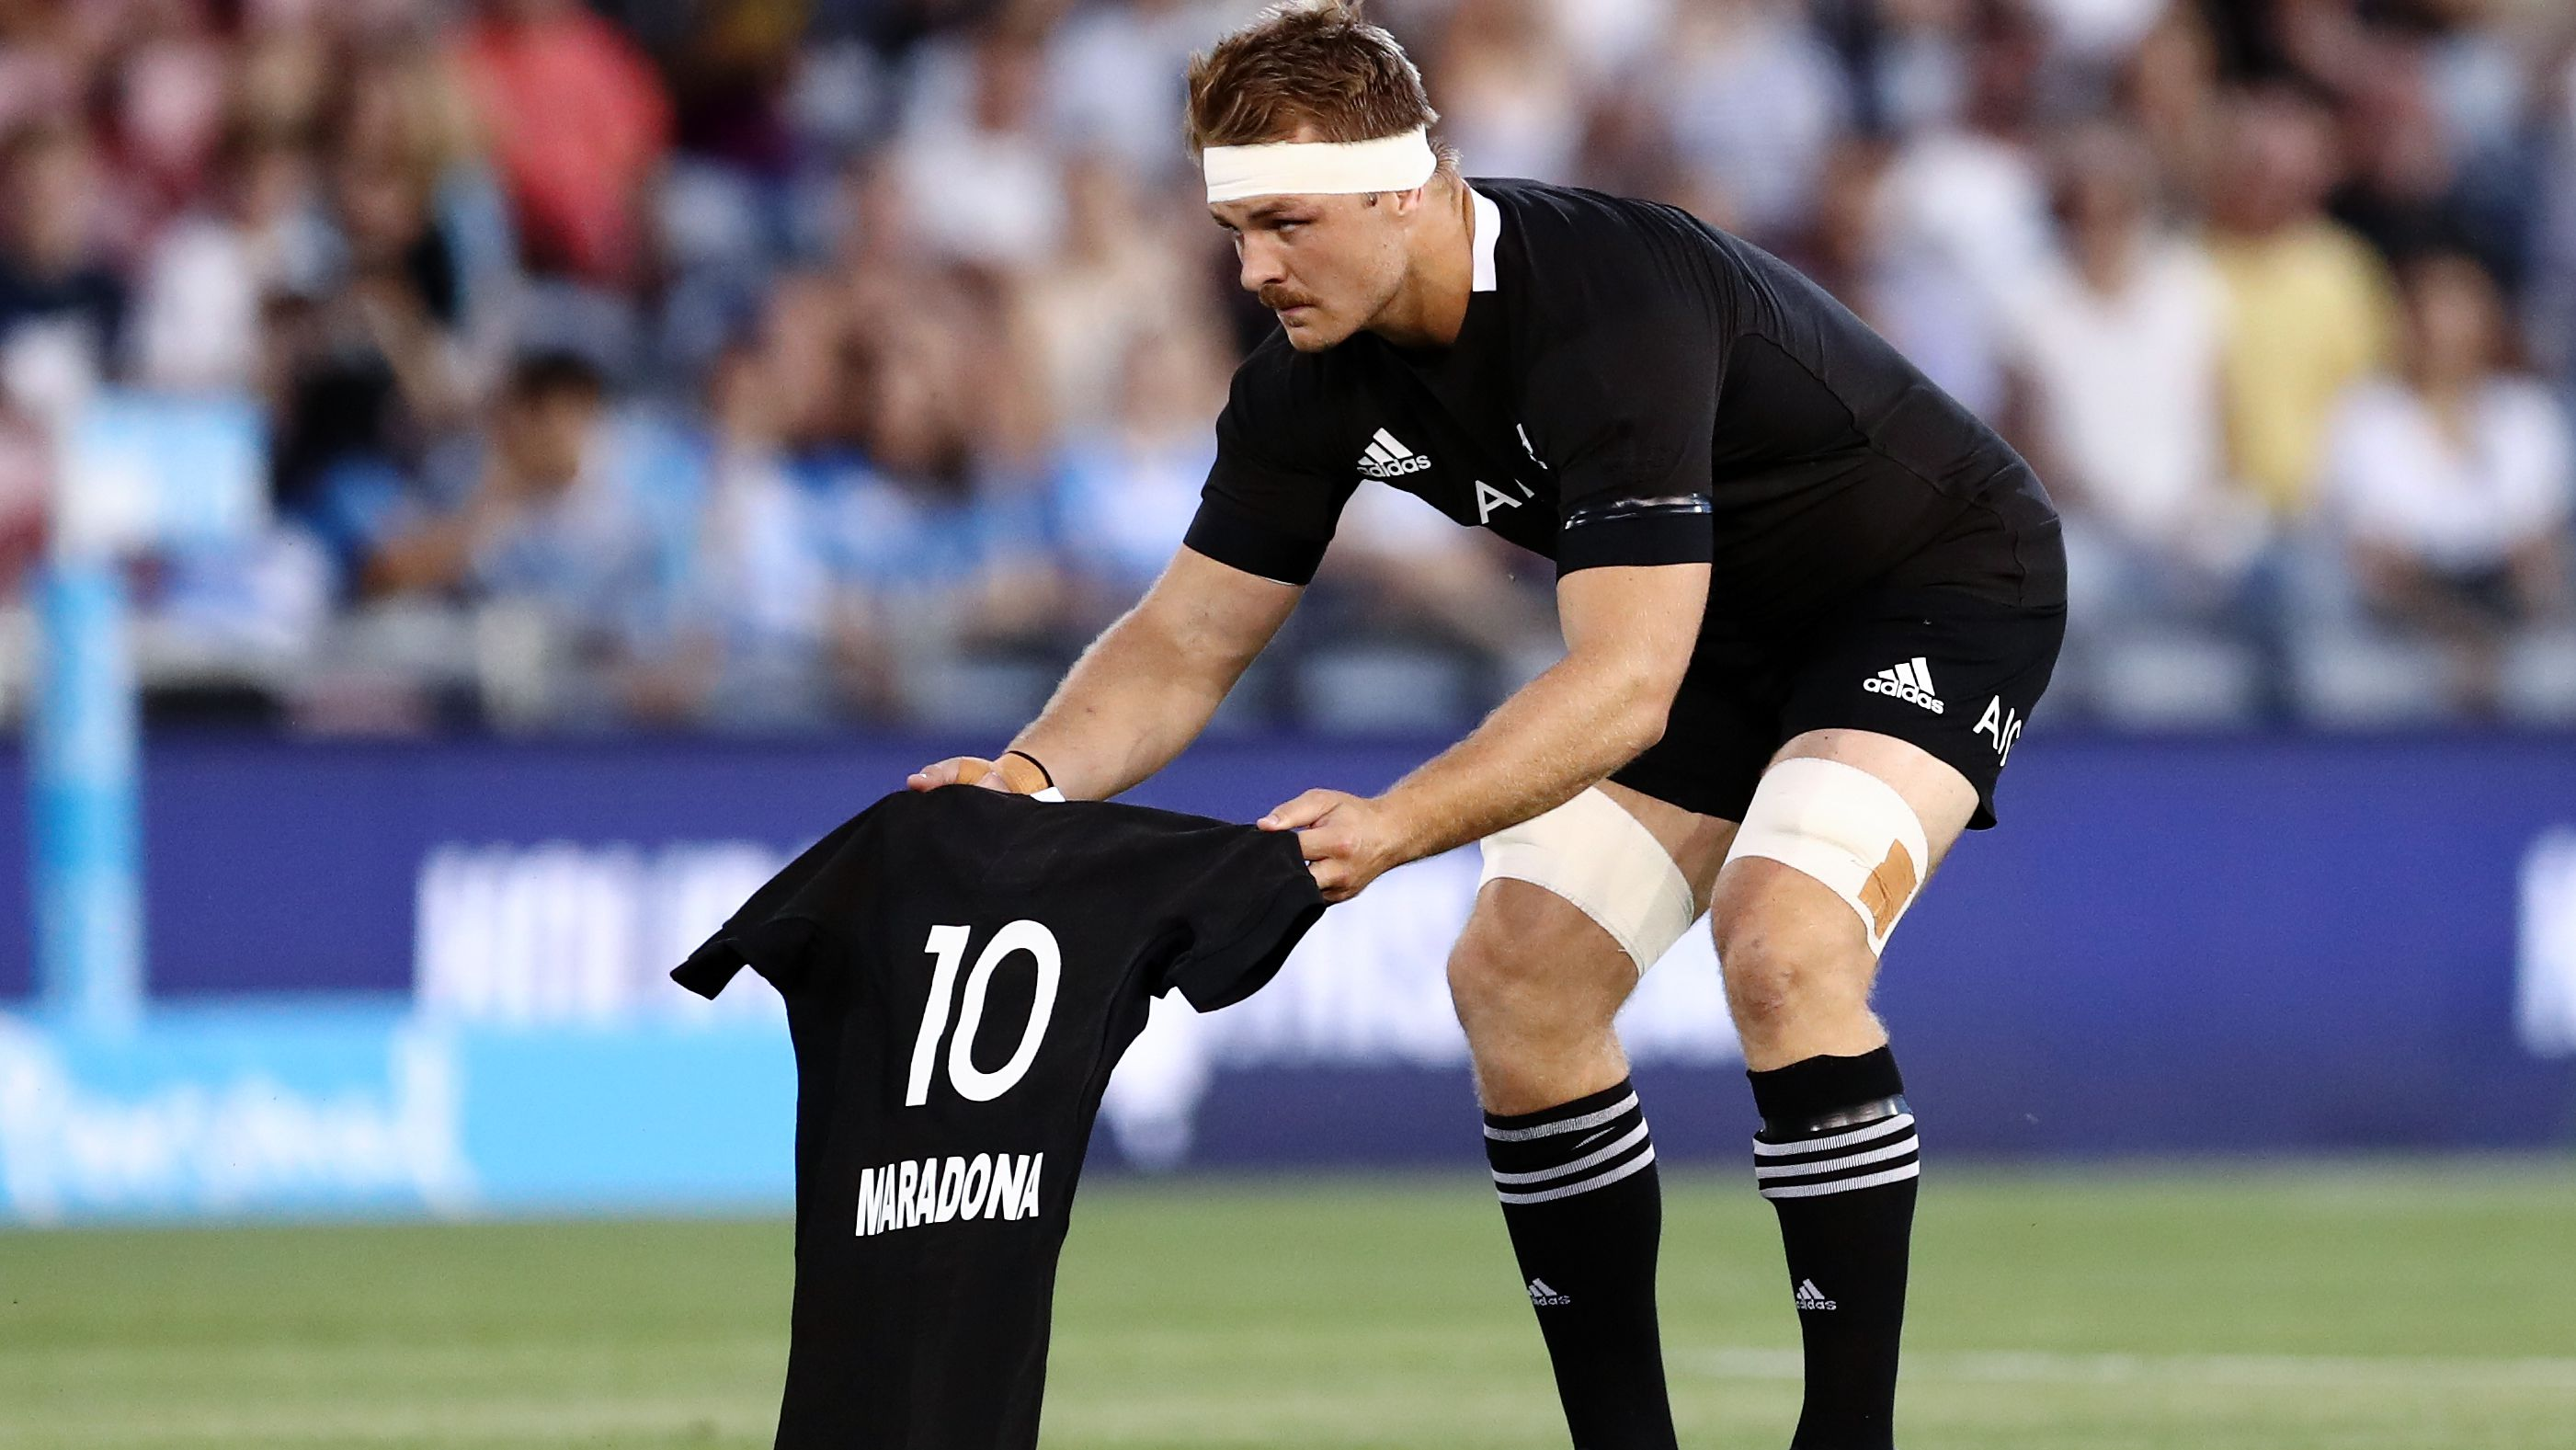 Sam Cane of the All Blacks lays down a number 10 jersey in memory of Diego Maradona.